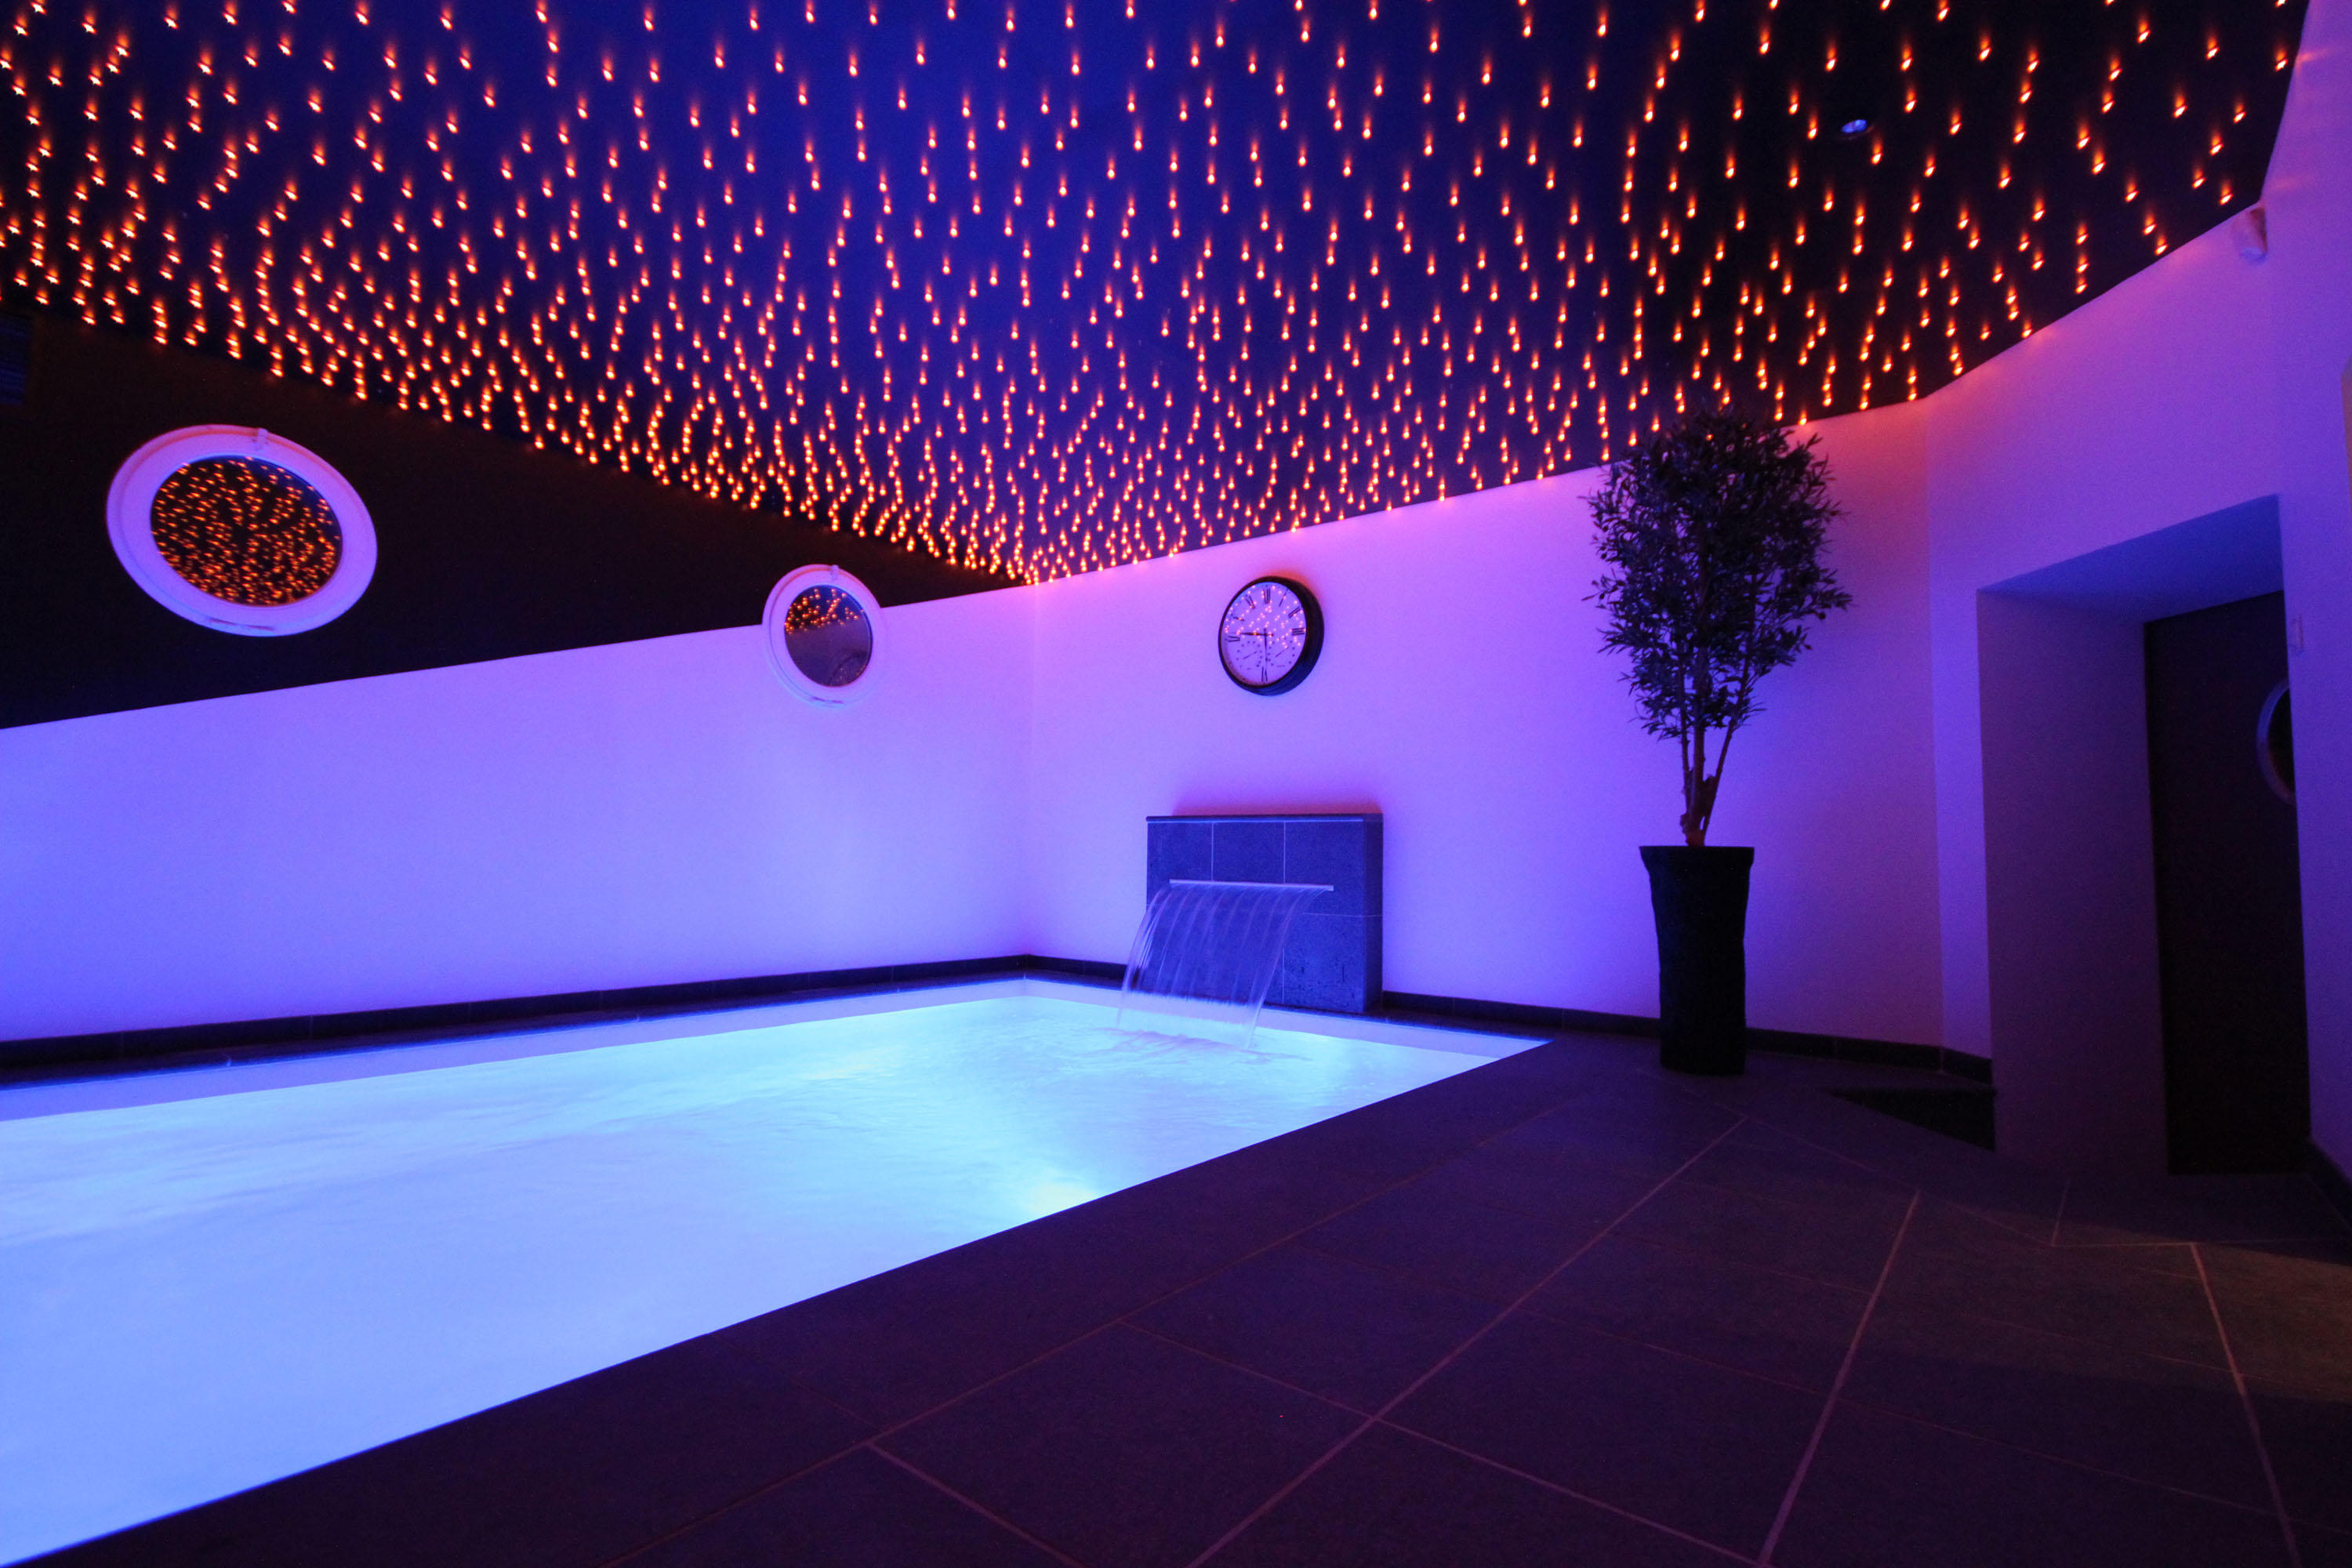 Indoor home pool for Piscine interieure